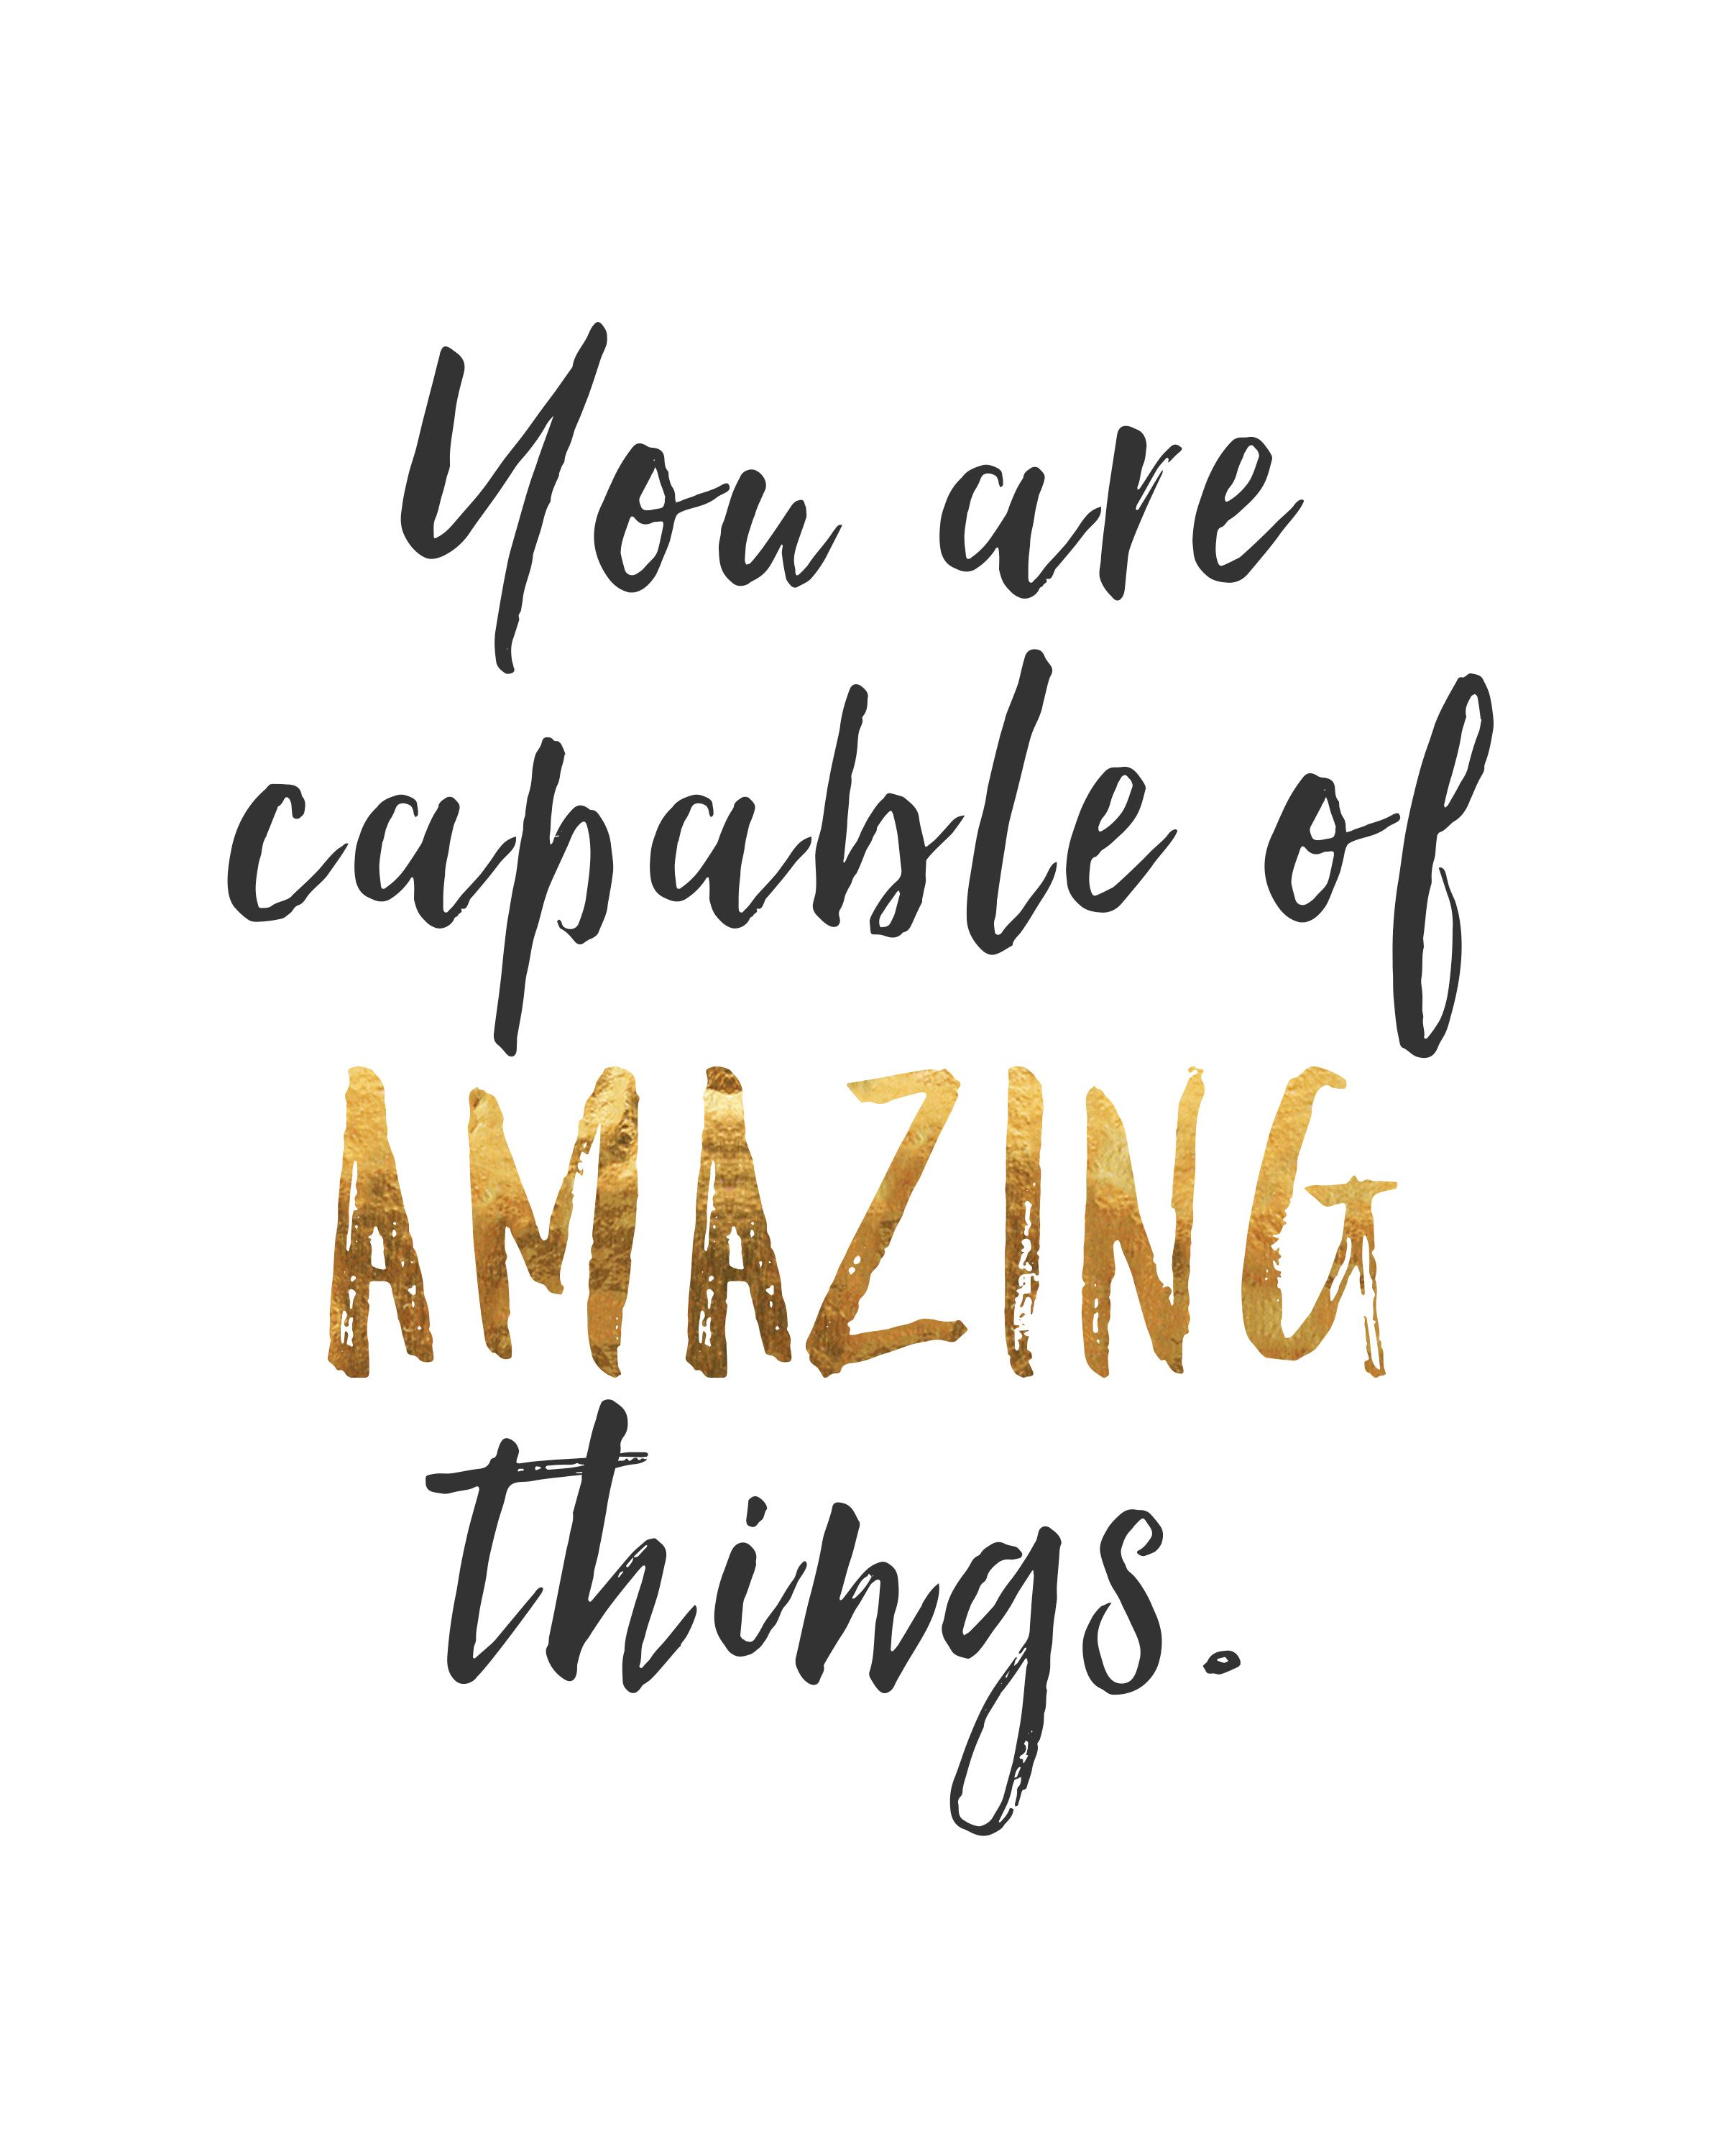 Motivational Quotes Funny Graphic Designers Pinterest: Inspirational Printable- You Are Capable Of Amazing Things